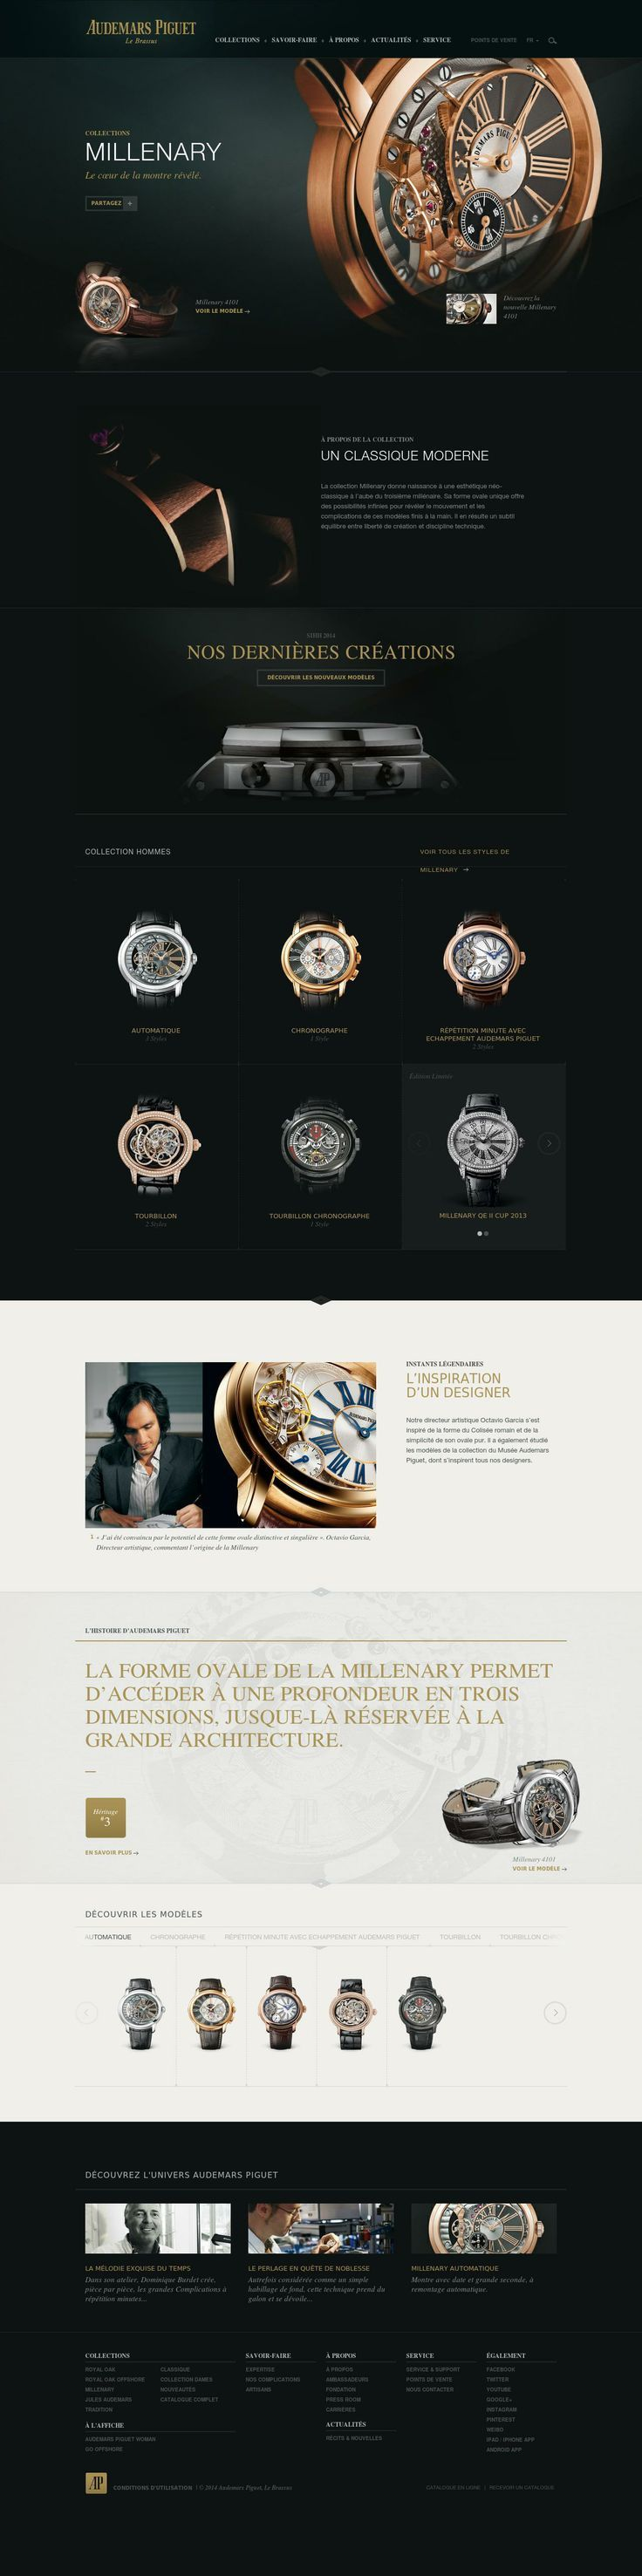 Professional & Trendy Web Design | From up North